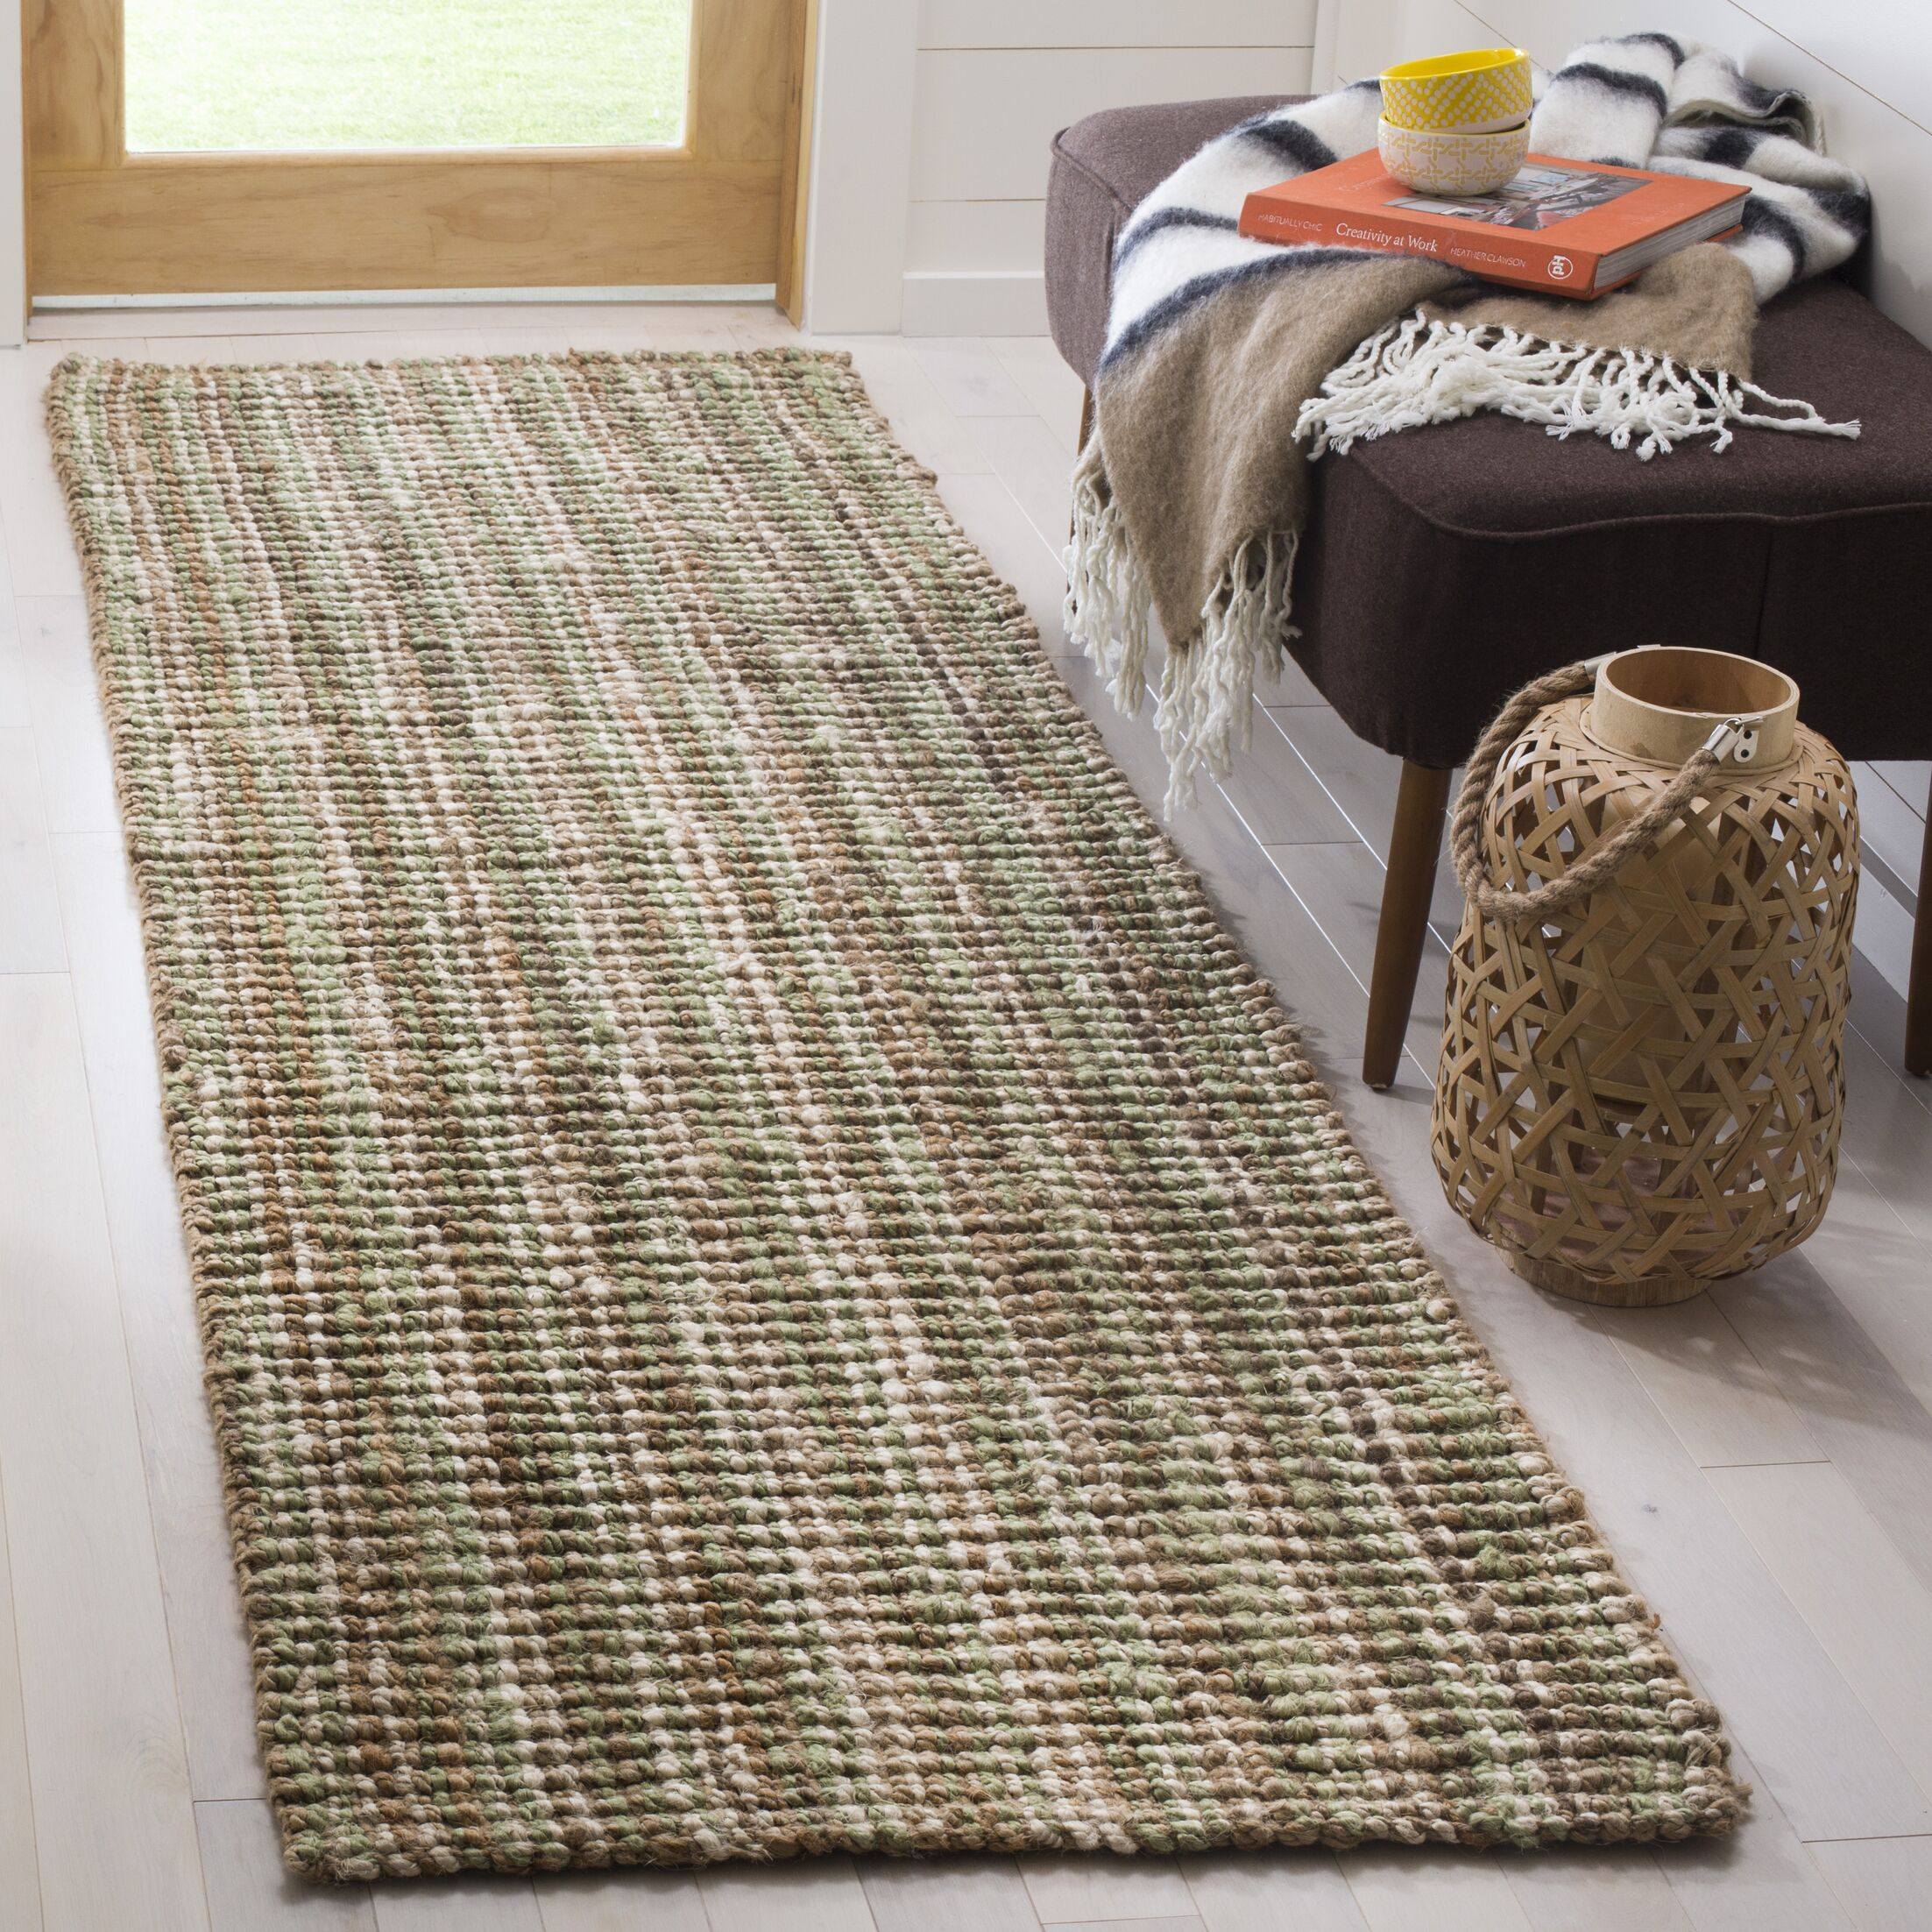 Bergeson Hand-Woven Sage/Natural Area Rug Rug Size: Runner 2'6